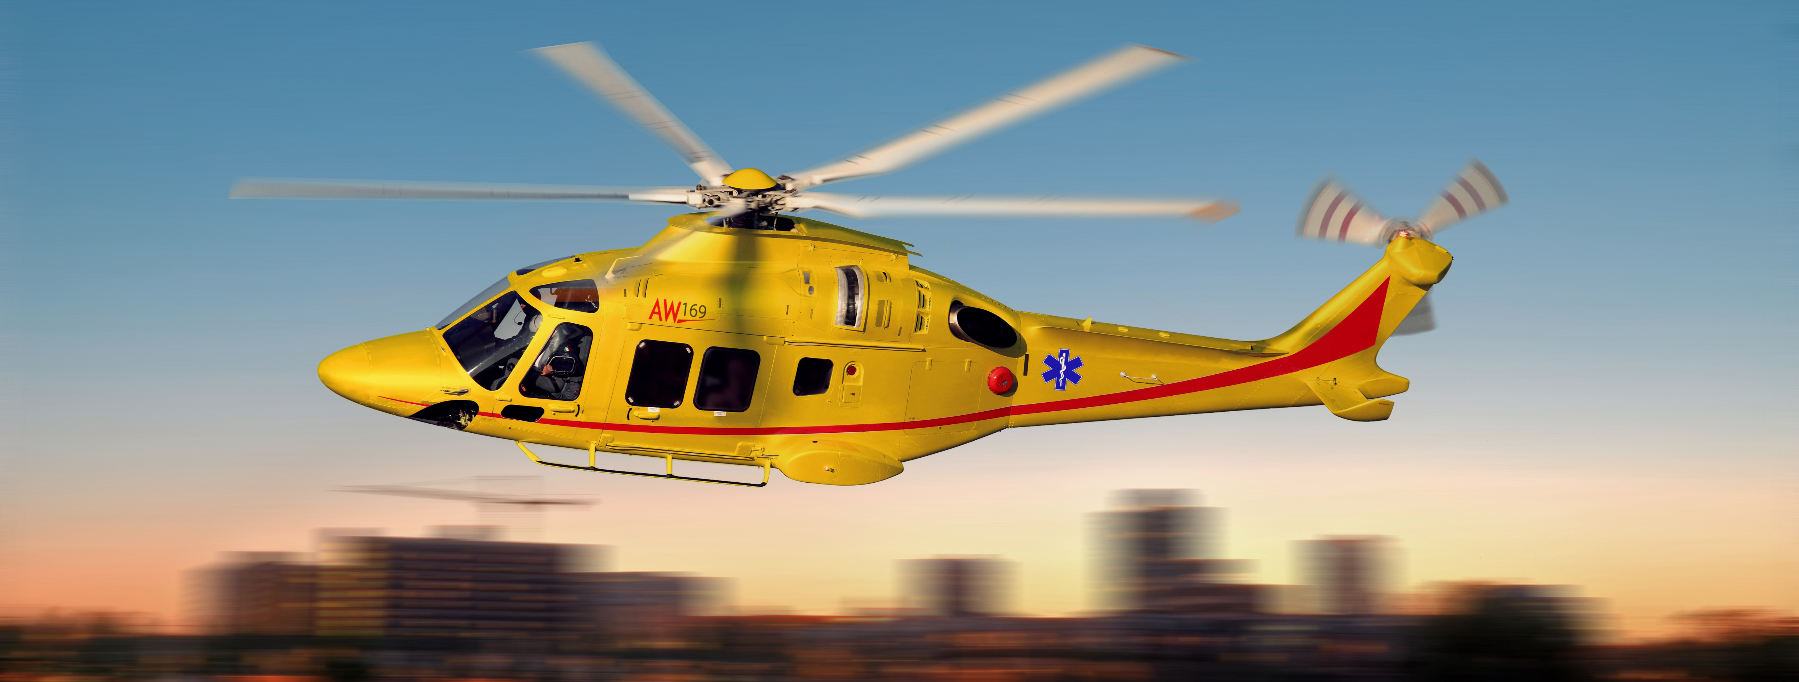 Chinese group orders 30 EMS helicopters from Leonardo